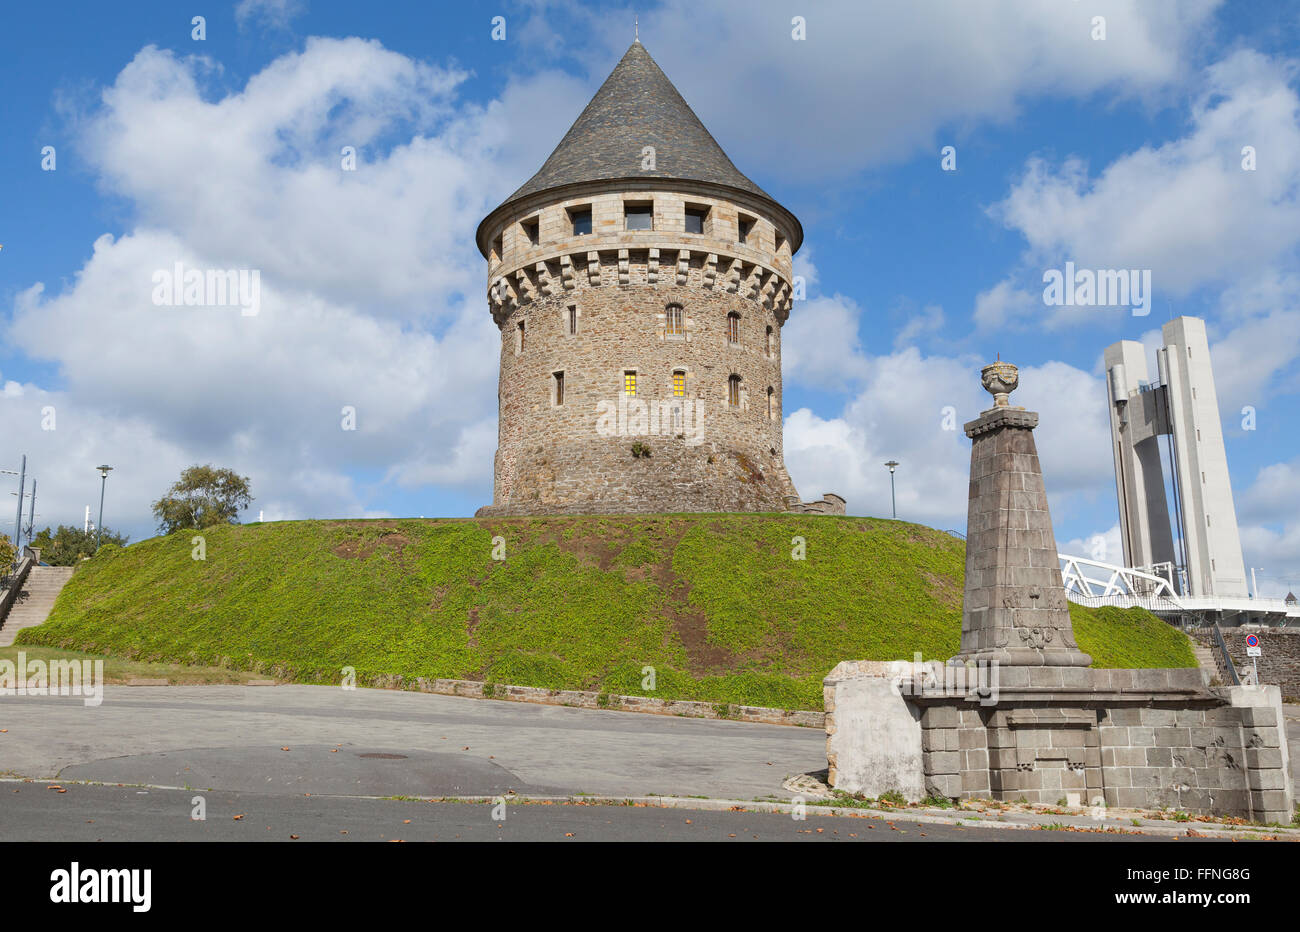 Historical Tanguy tower (Tour Tanguy) - one of the oldest monuments in Brest, Brittany, France - Stock Image